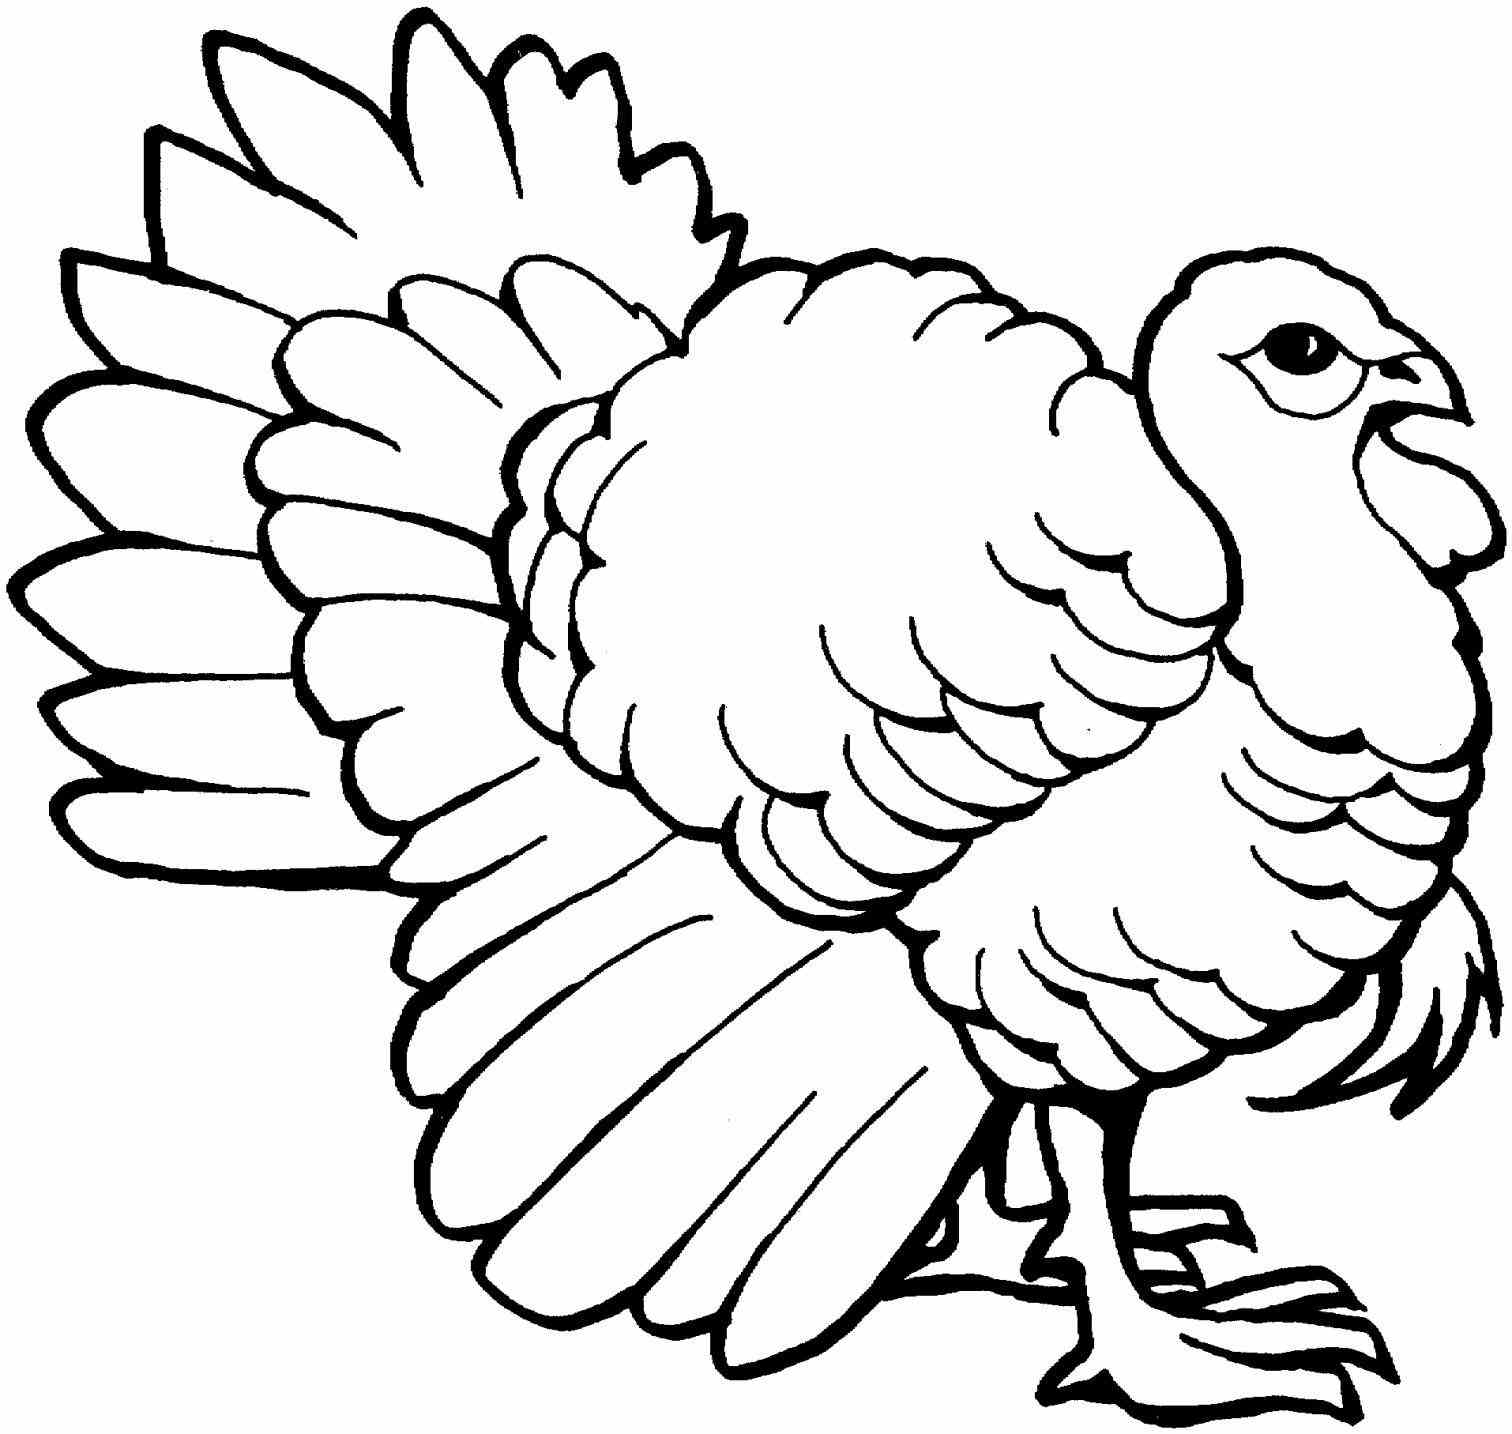 1512x1434 Drawing Of A Turkey Cartoon Thanksgiving Drawing Images